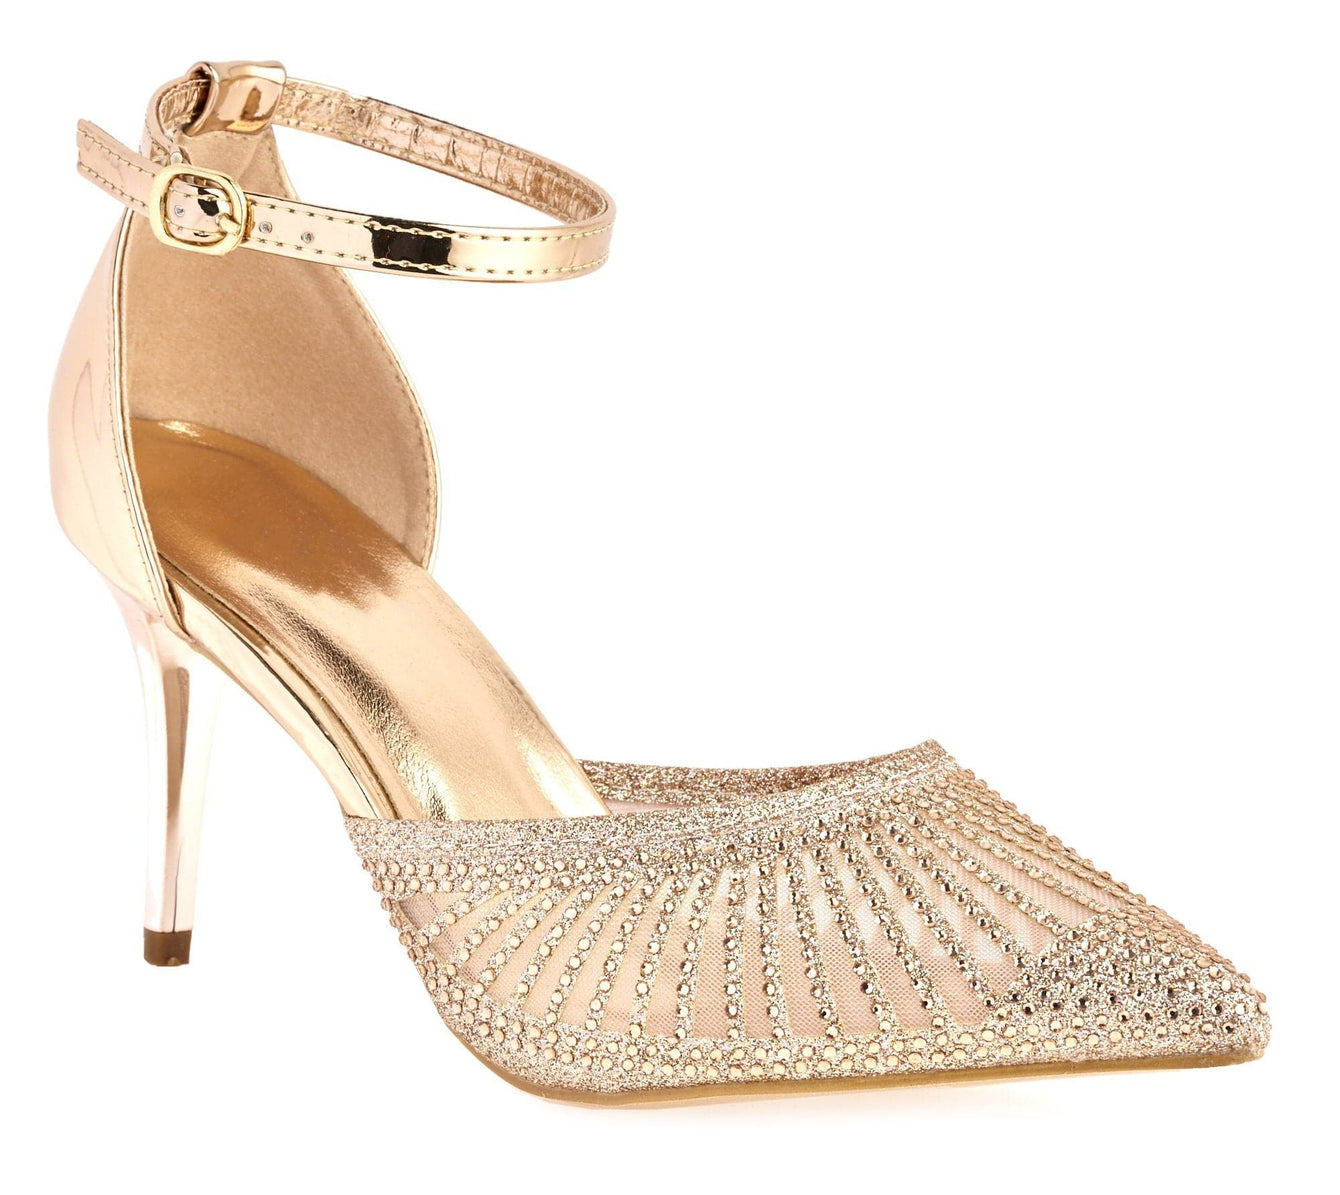 Singapore Mesh Diamante Ankle Strap Closed Toe High Metallic Heel In Champagne